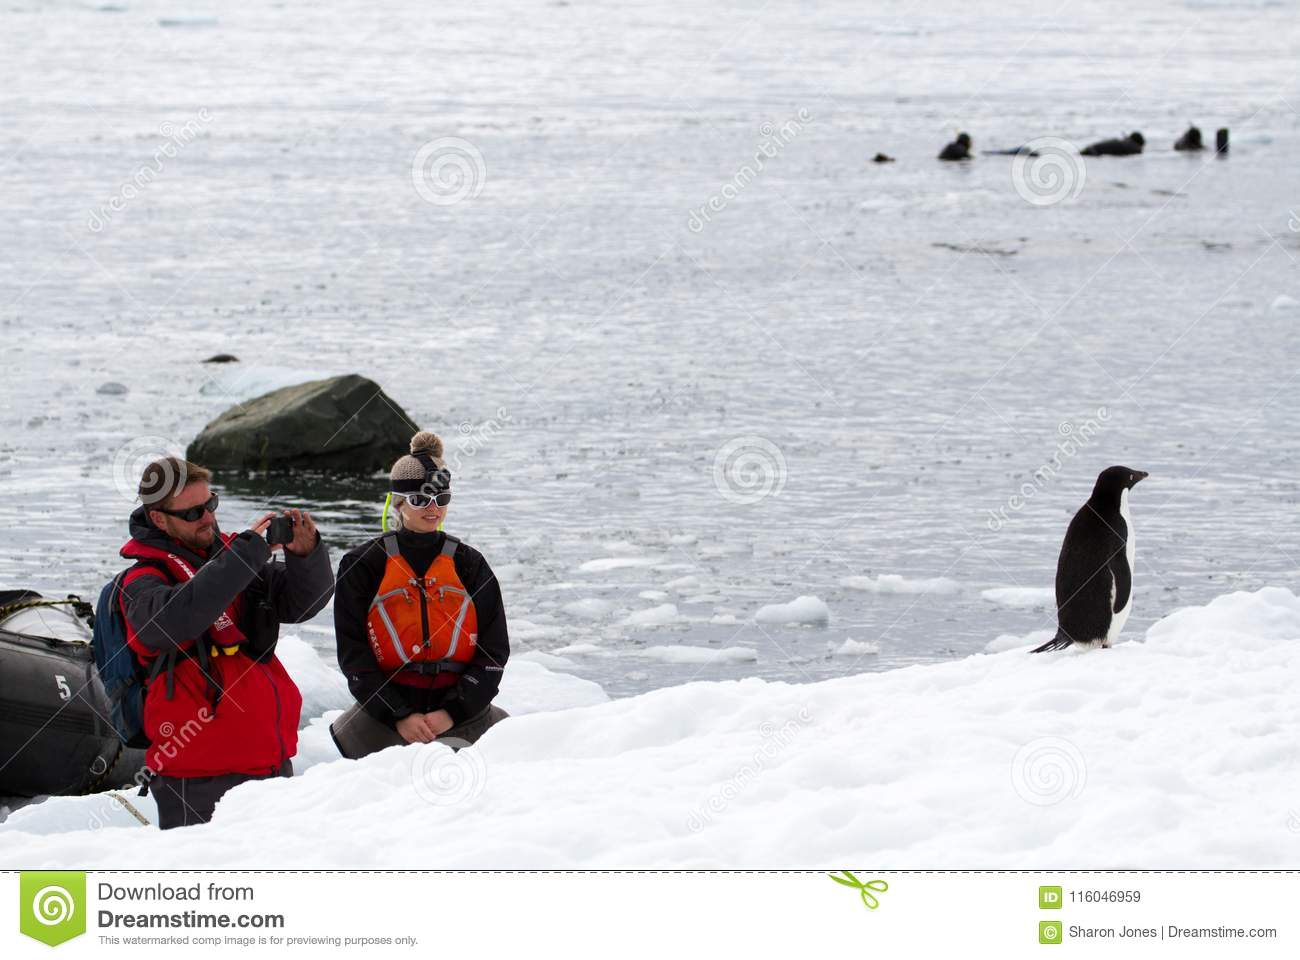 A man and a woman watching and taking a photograph of an Adelie Penguin Pygoscelis adeliae while a group of people